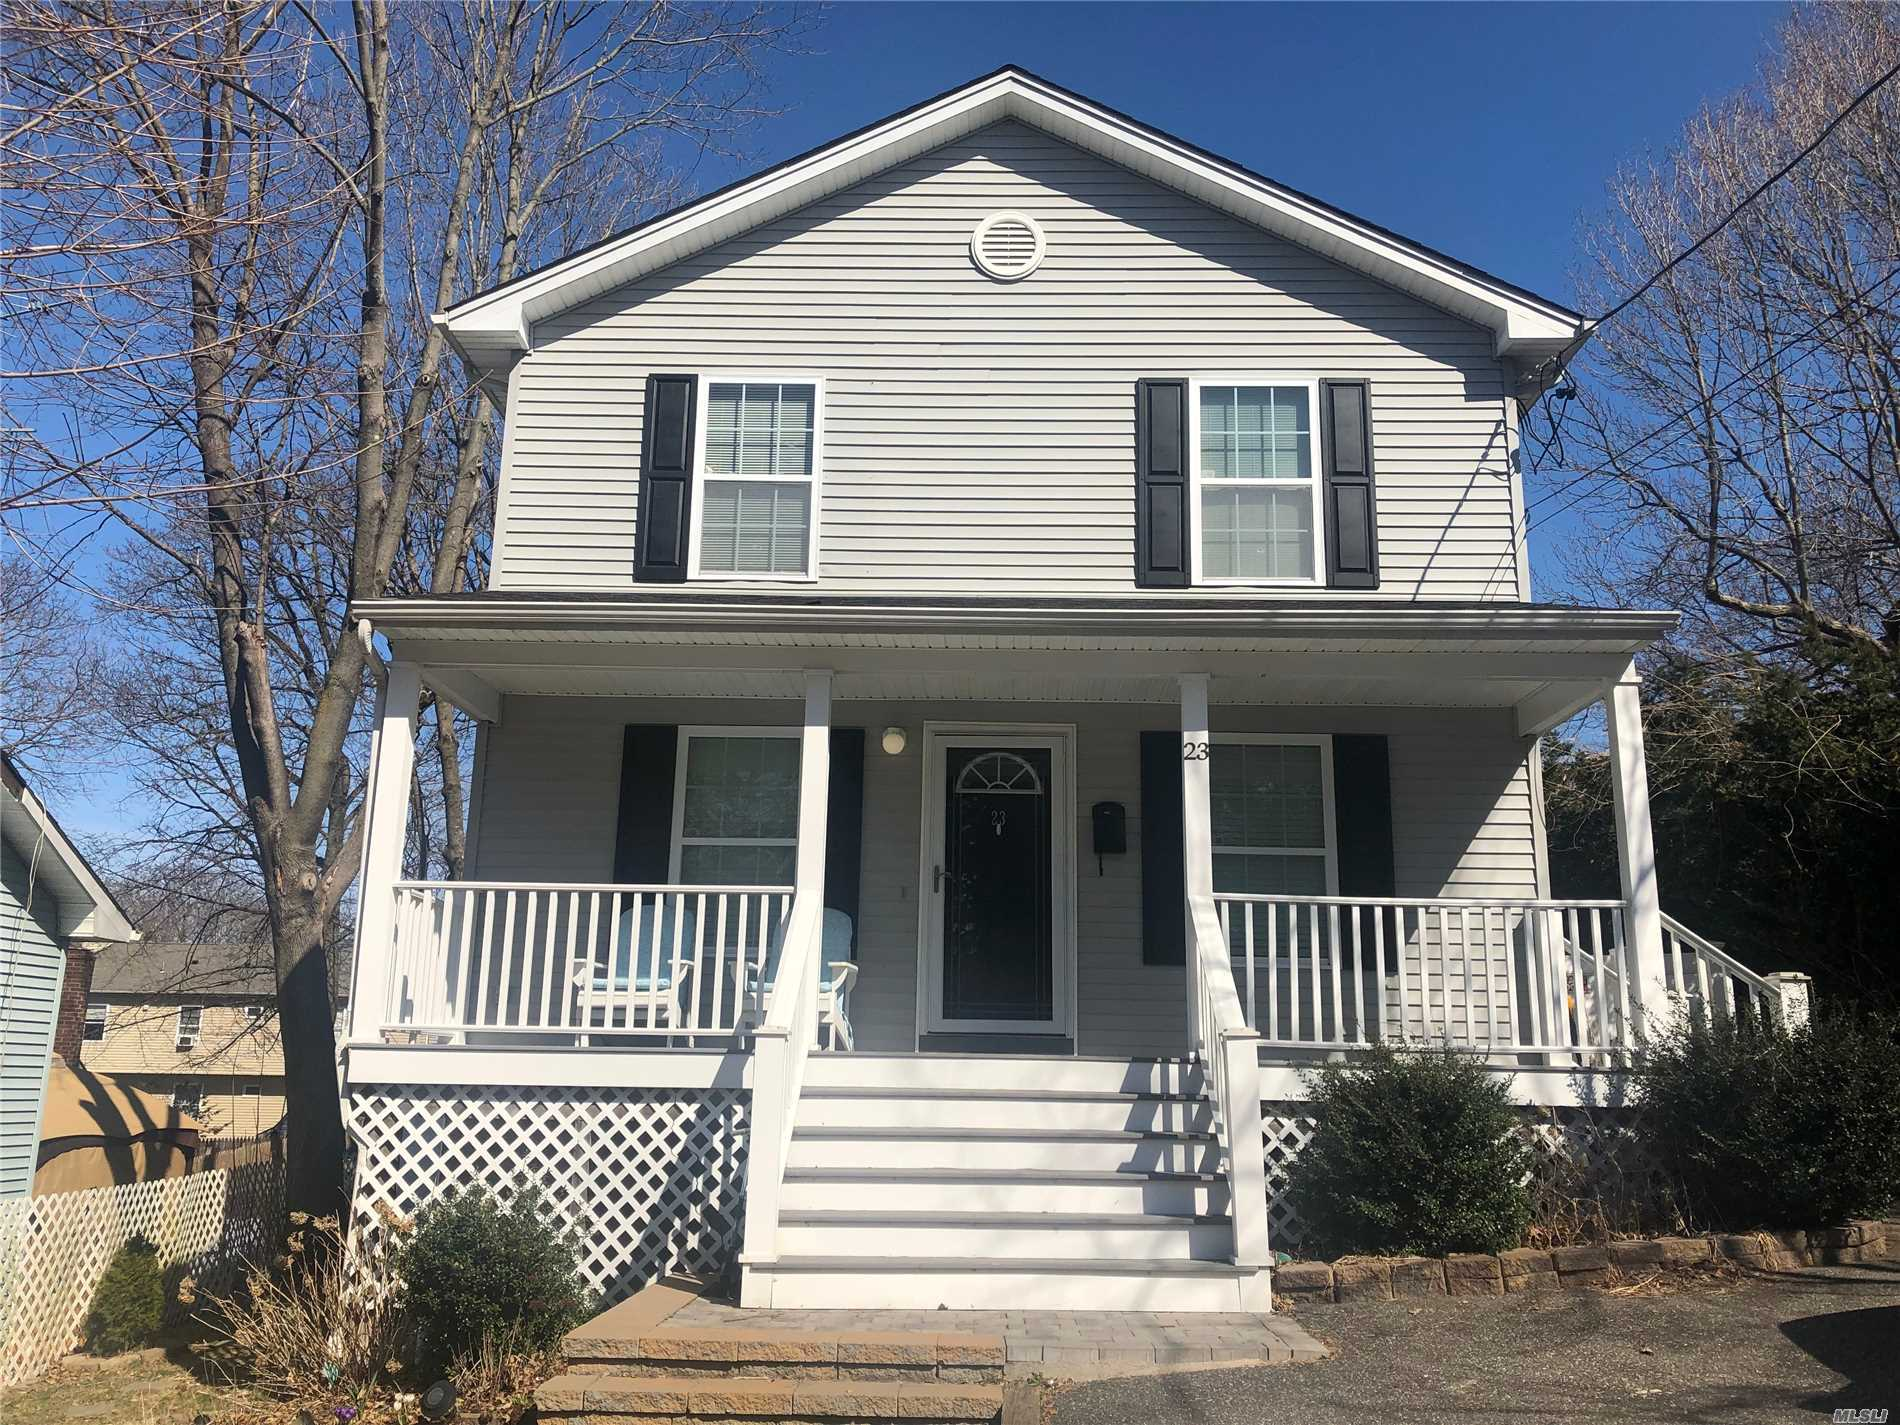 Great opportunity to own a 2010 built home minutes from The LIRR and Vibrant Huntington Village. This home offers 2 bedrooms on the first floor and a full bath. The second floor has 4 bedrooms and a full bath. The basement could be finished and offers 10' ceilings. Enjoy an open floor plan, gas heat and cooking, vinyl siding, updated windows, and an open floor plan.